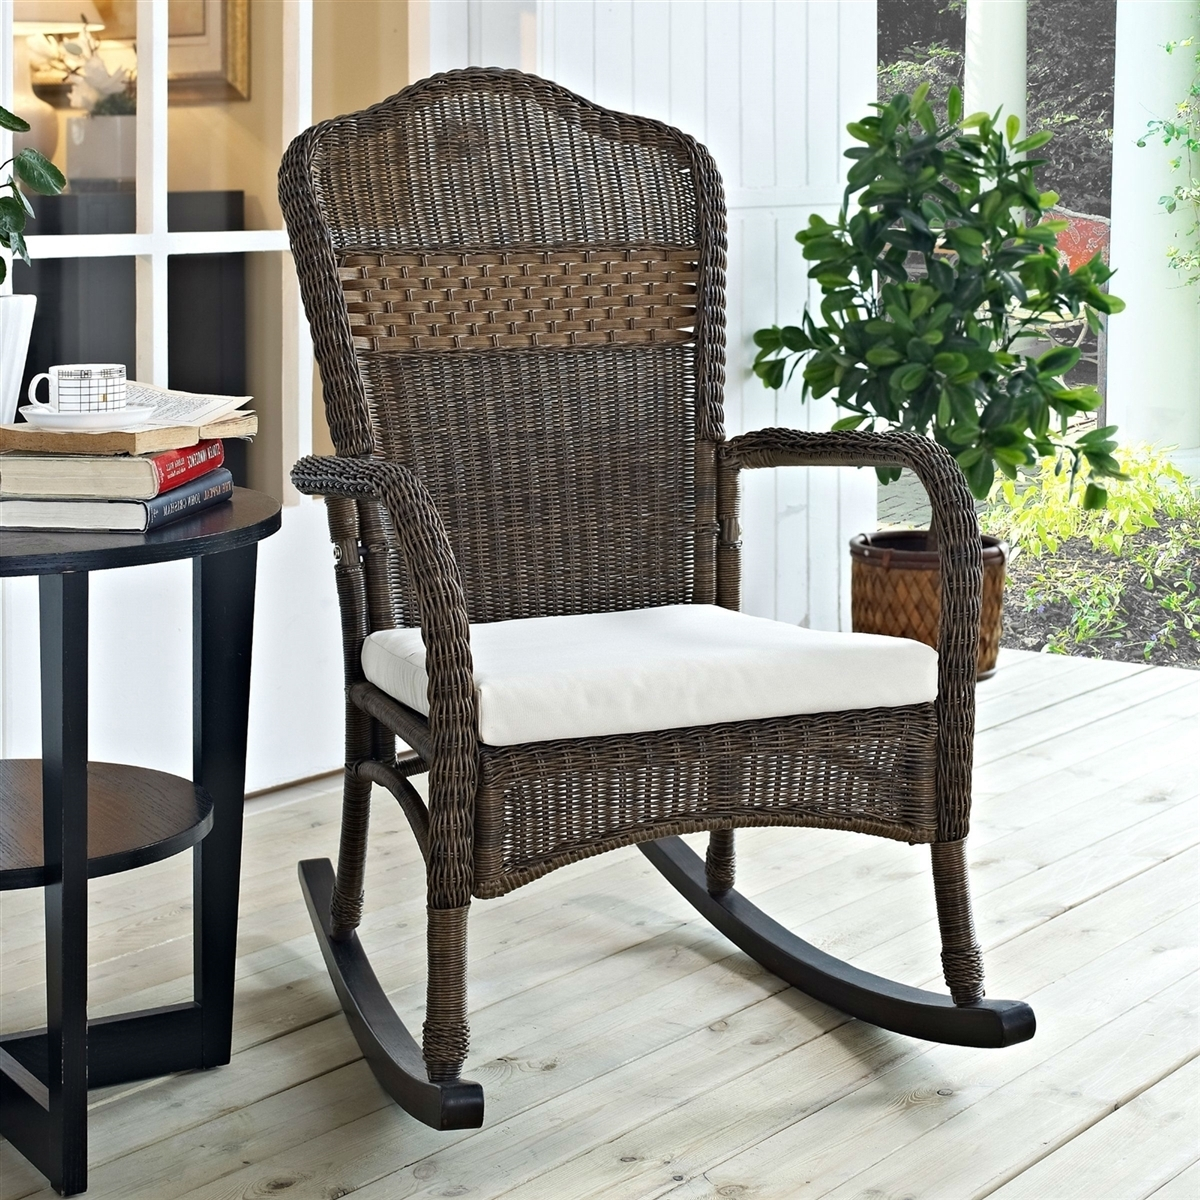 Wicker Patio Furniture Rocking Chair Mocha With Beige Cushion For Brown Wicker Patio Rocking Chairs (#15 of 15)